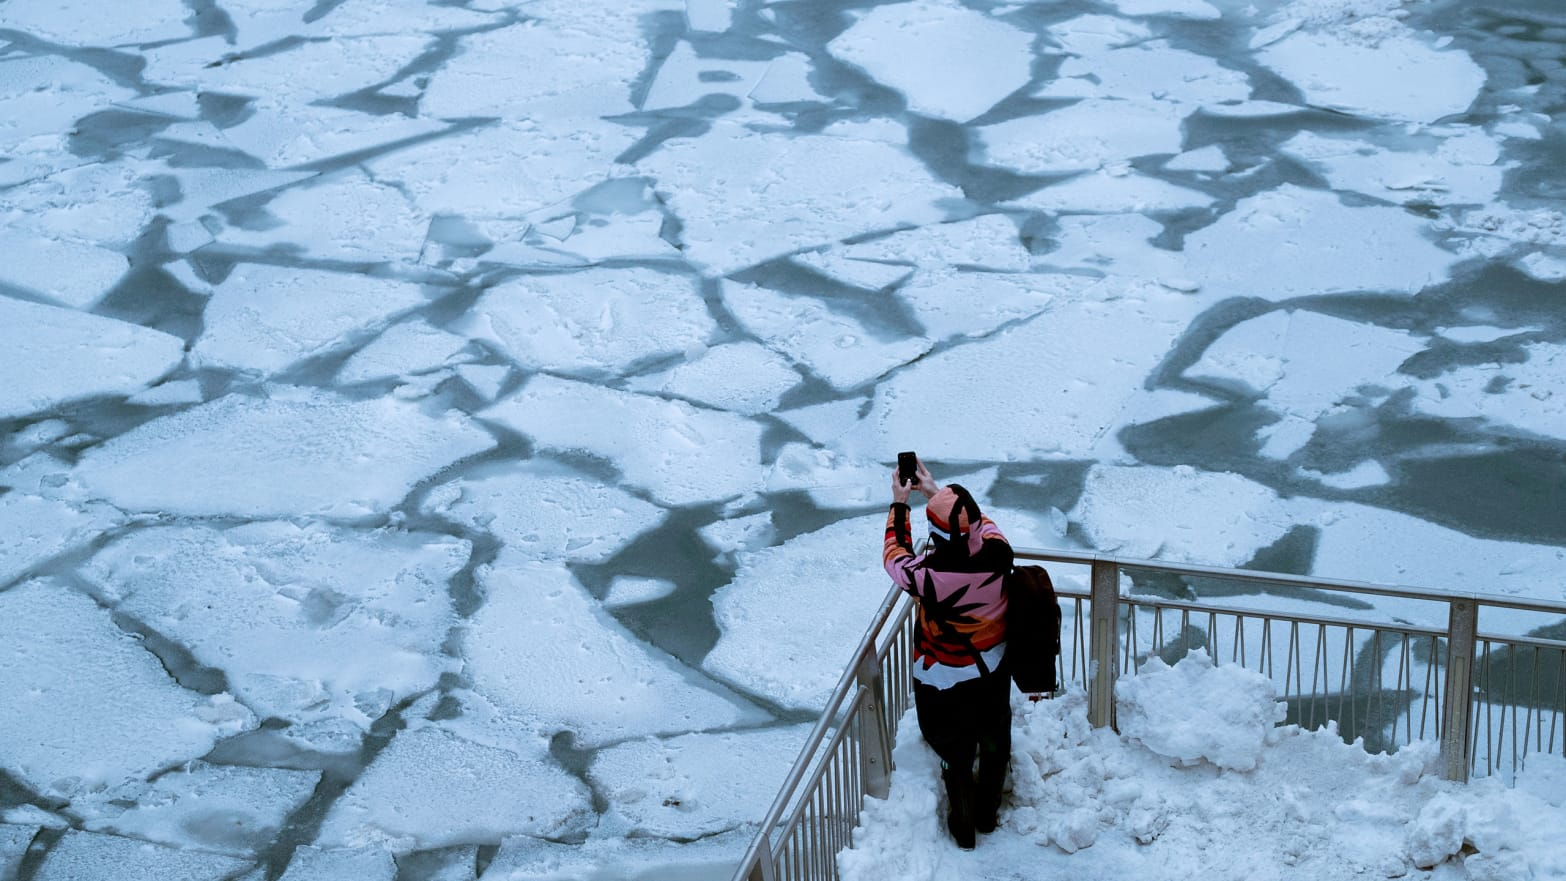 pedestrian stopping by chicago river to take picture of ice polar vortex frost quake frostquake steven battaglia climate change